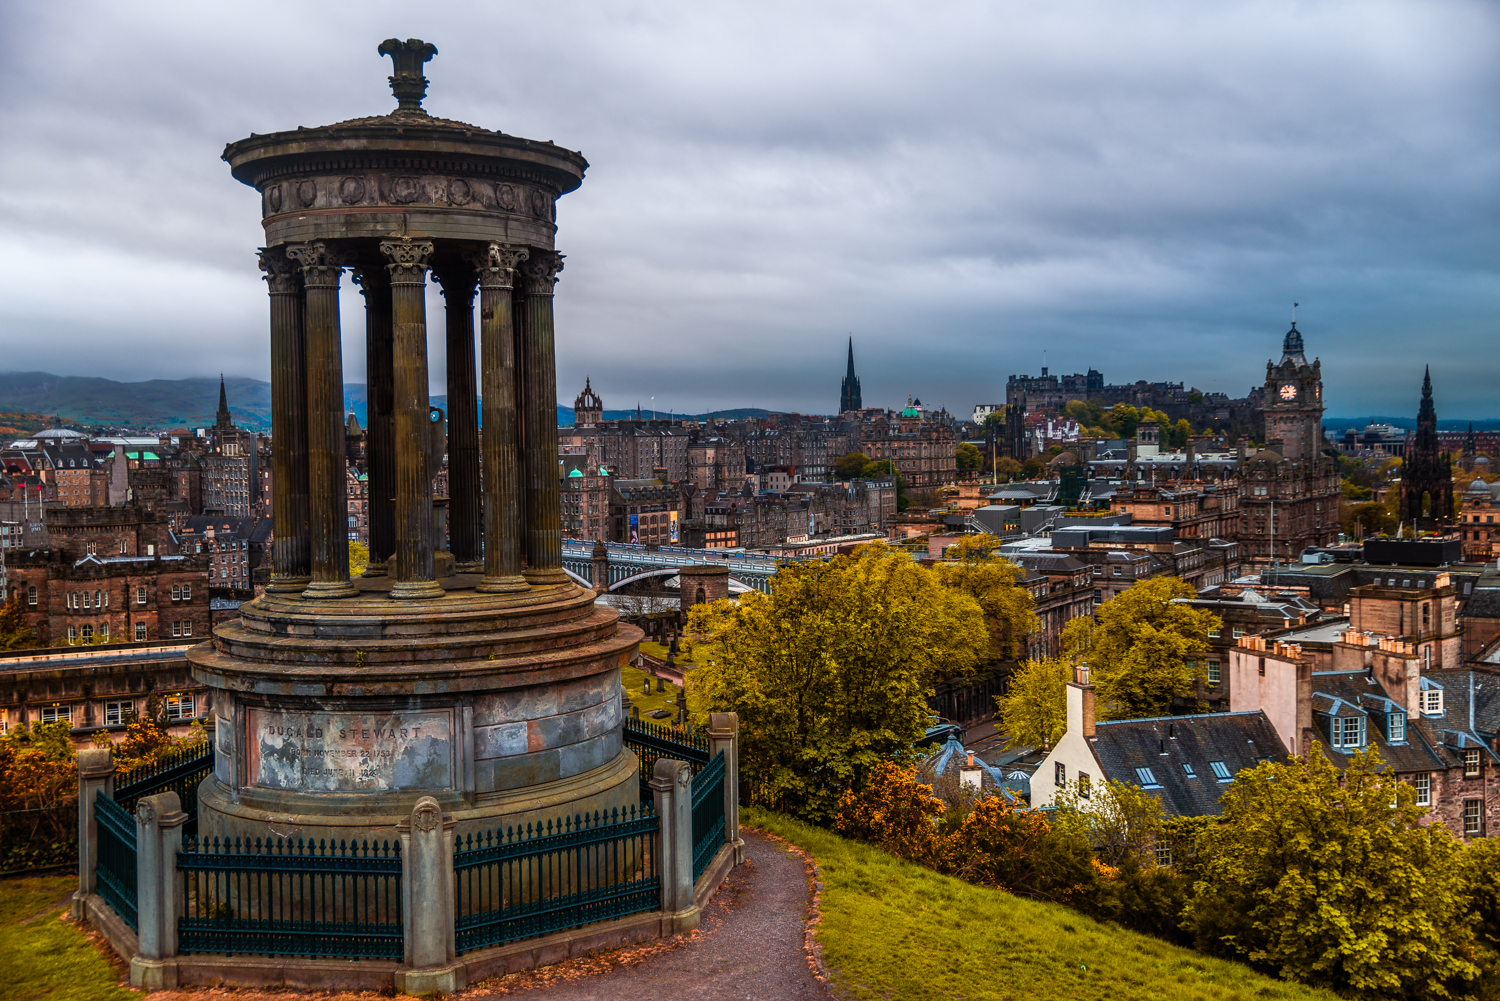 https://sleeklens.com/wp-content/uploads/2016/10/15052015-EdinburghMaj2015-D800-22.jpg